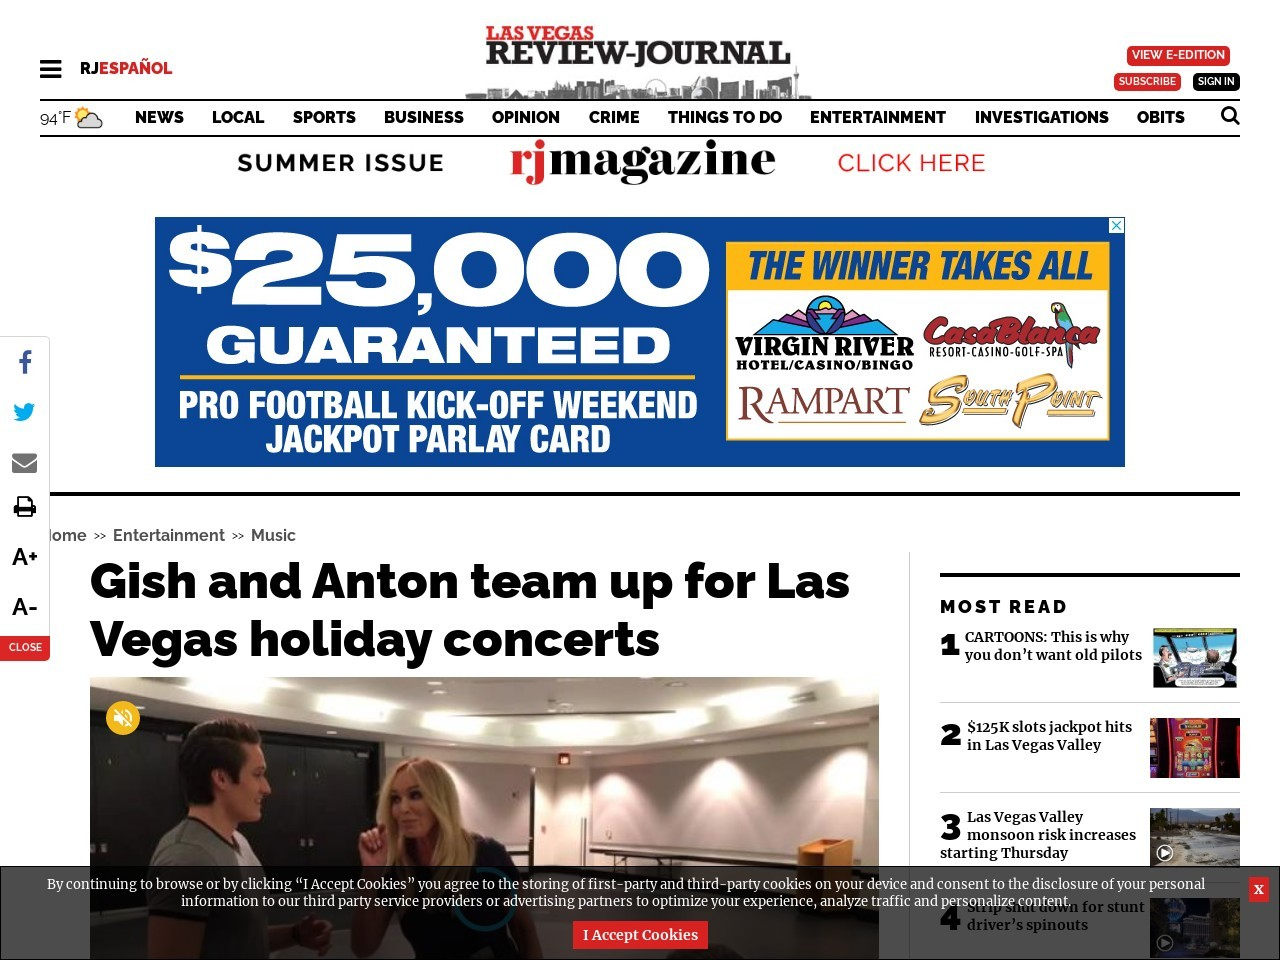 James D. Gish and Susan Anton team up for Las Vegas holiday concerts